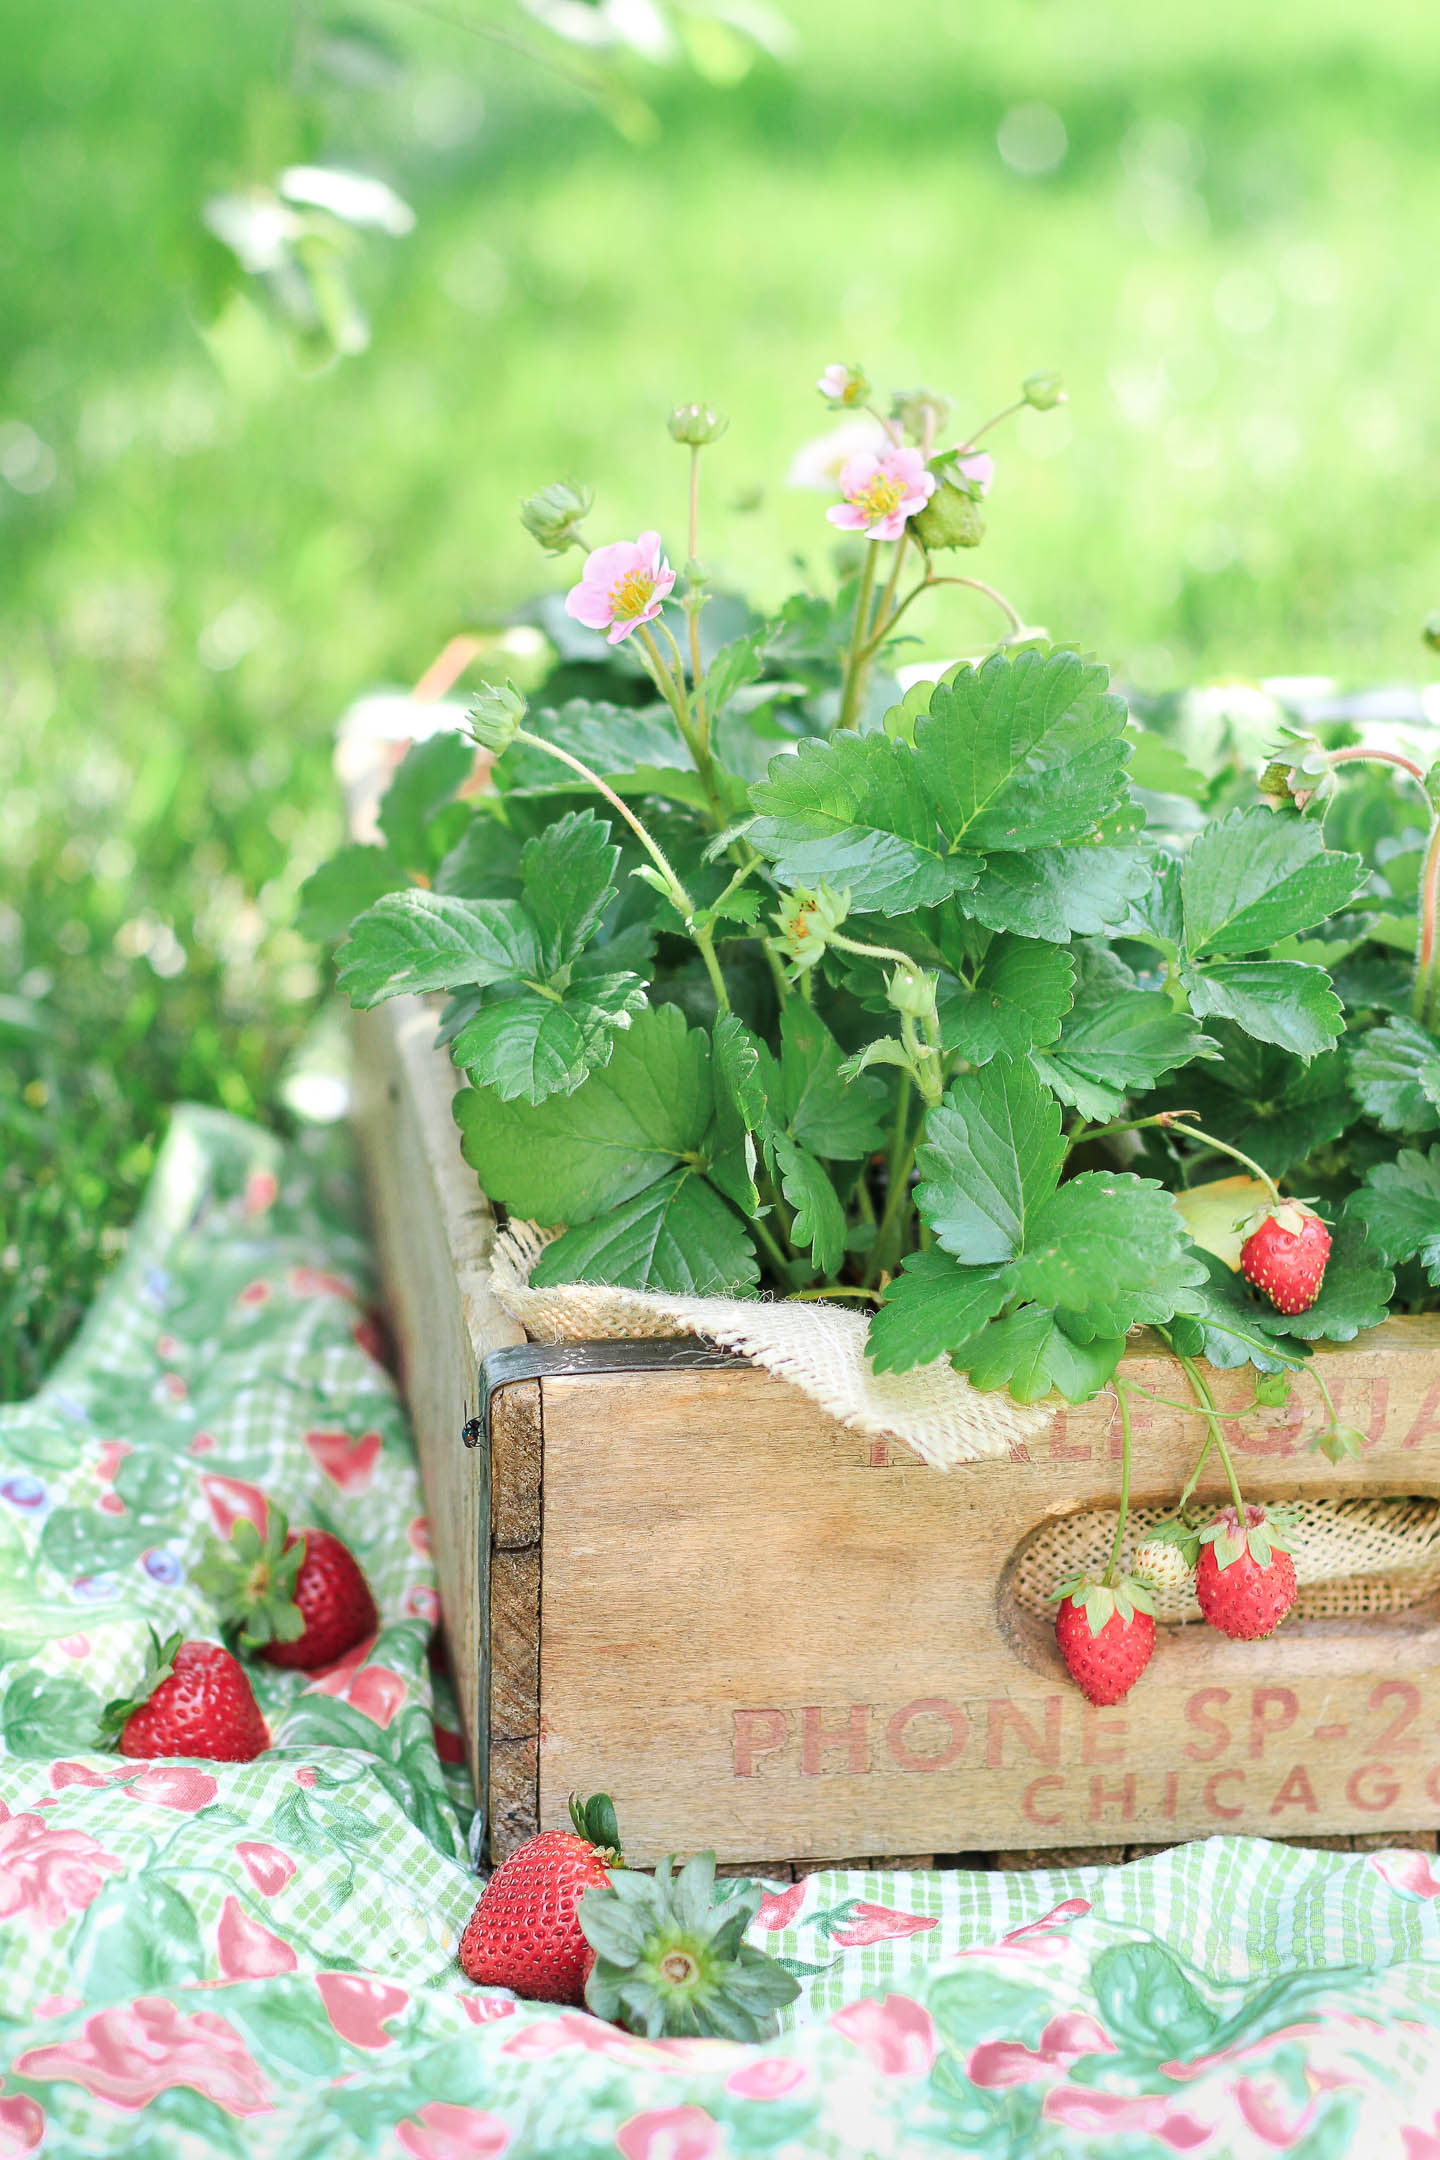 A wooden crate filled with strawberry plants.